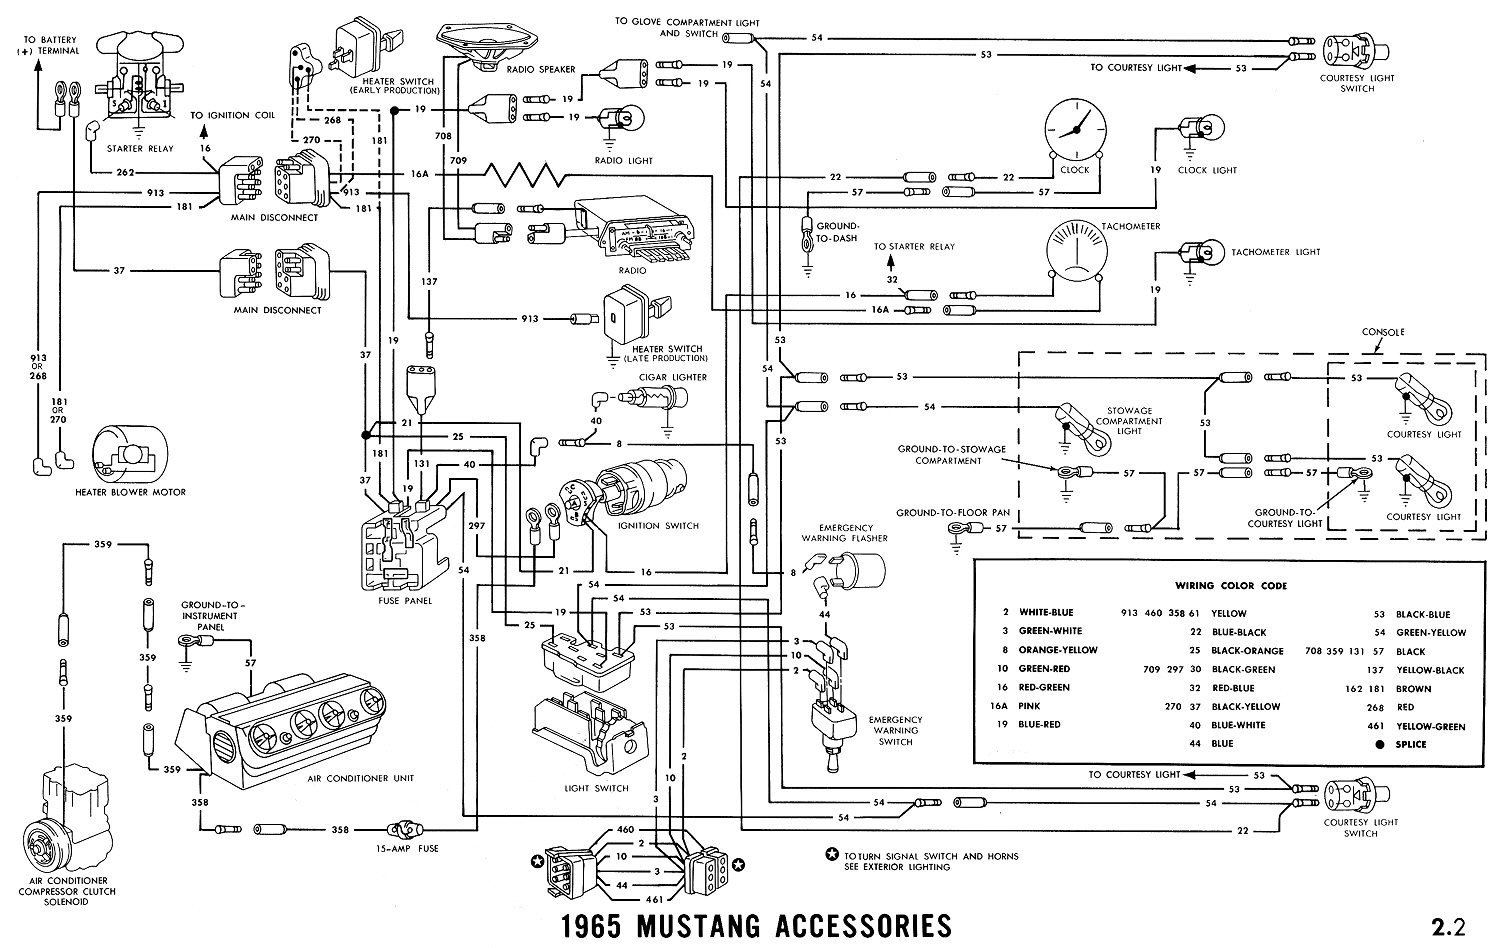 1965i 1965 mustang wiring diagrams average joe restoration 2005 mustang gt ignition wiring diagram at gsmx.co